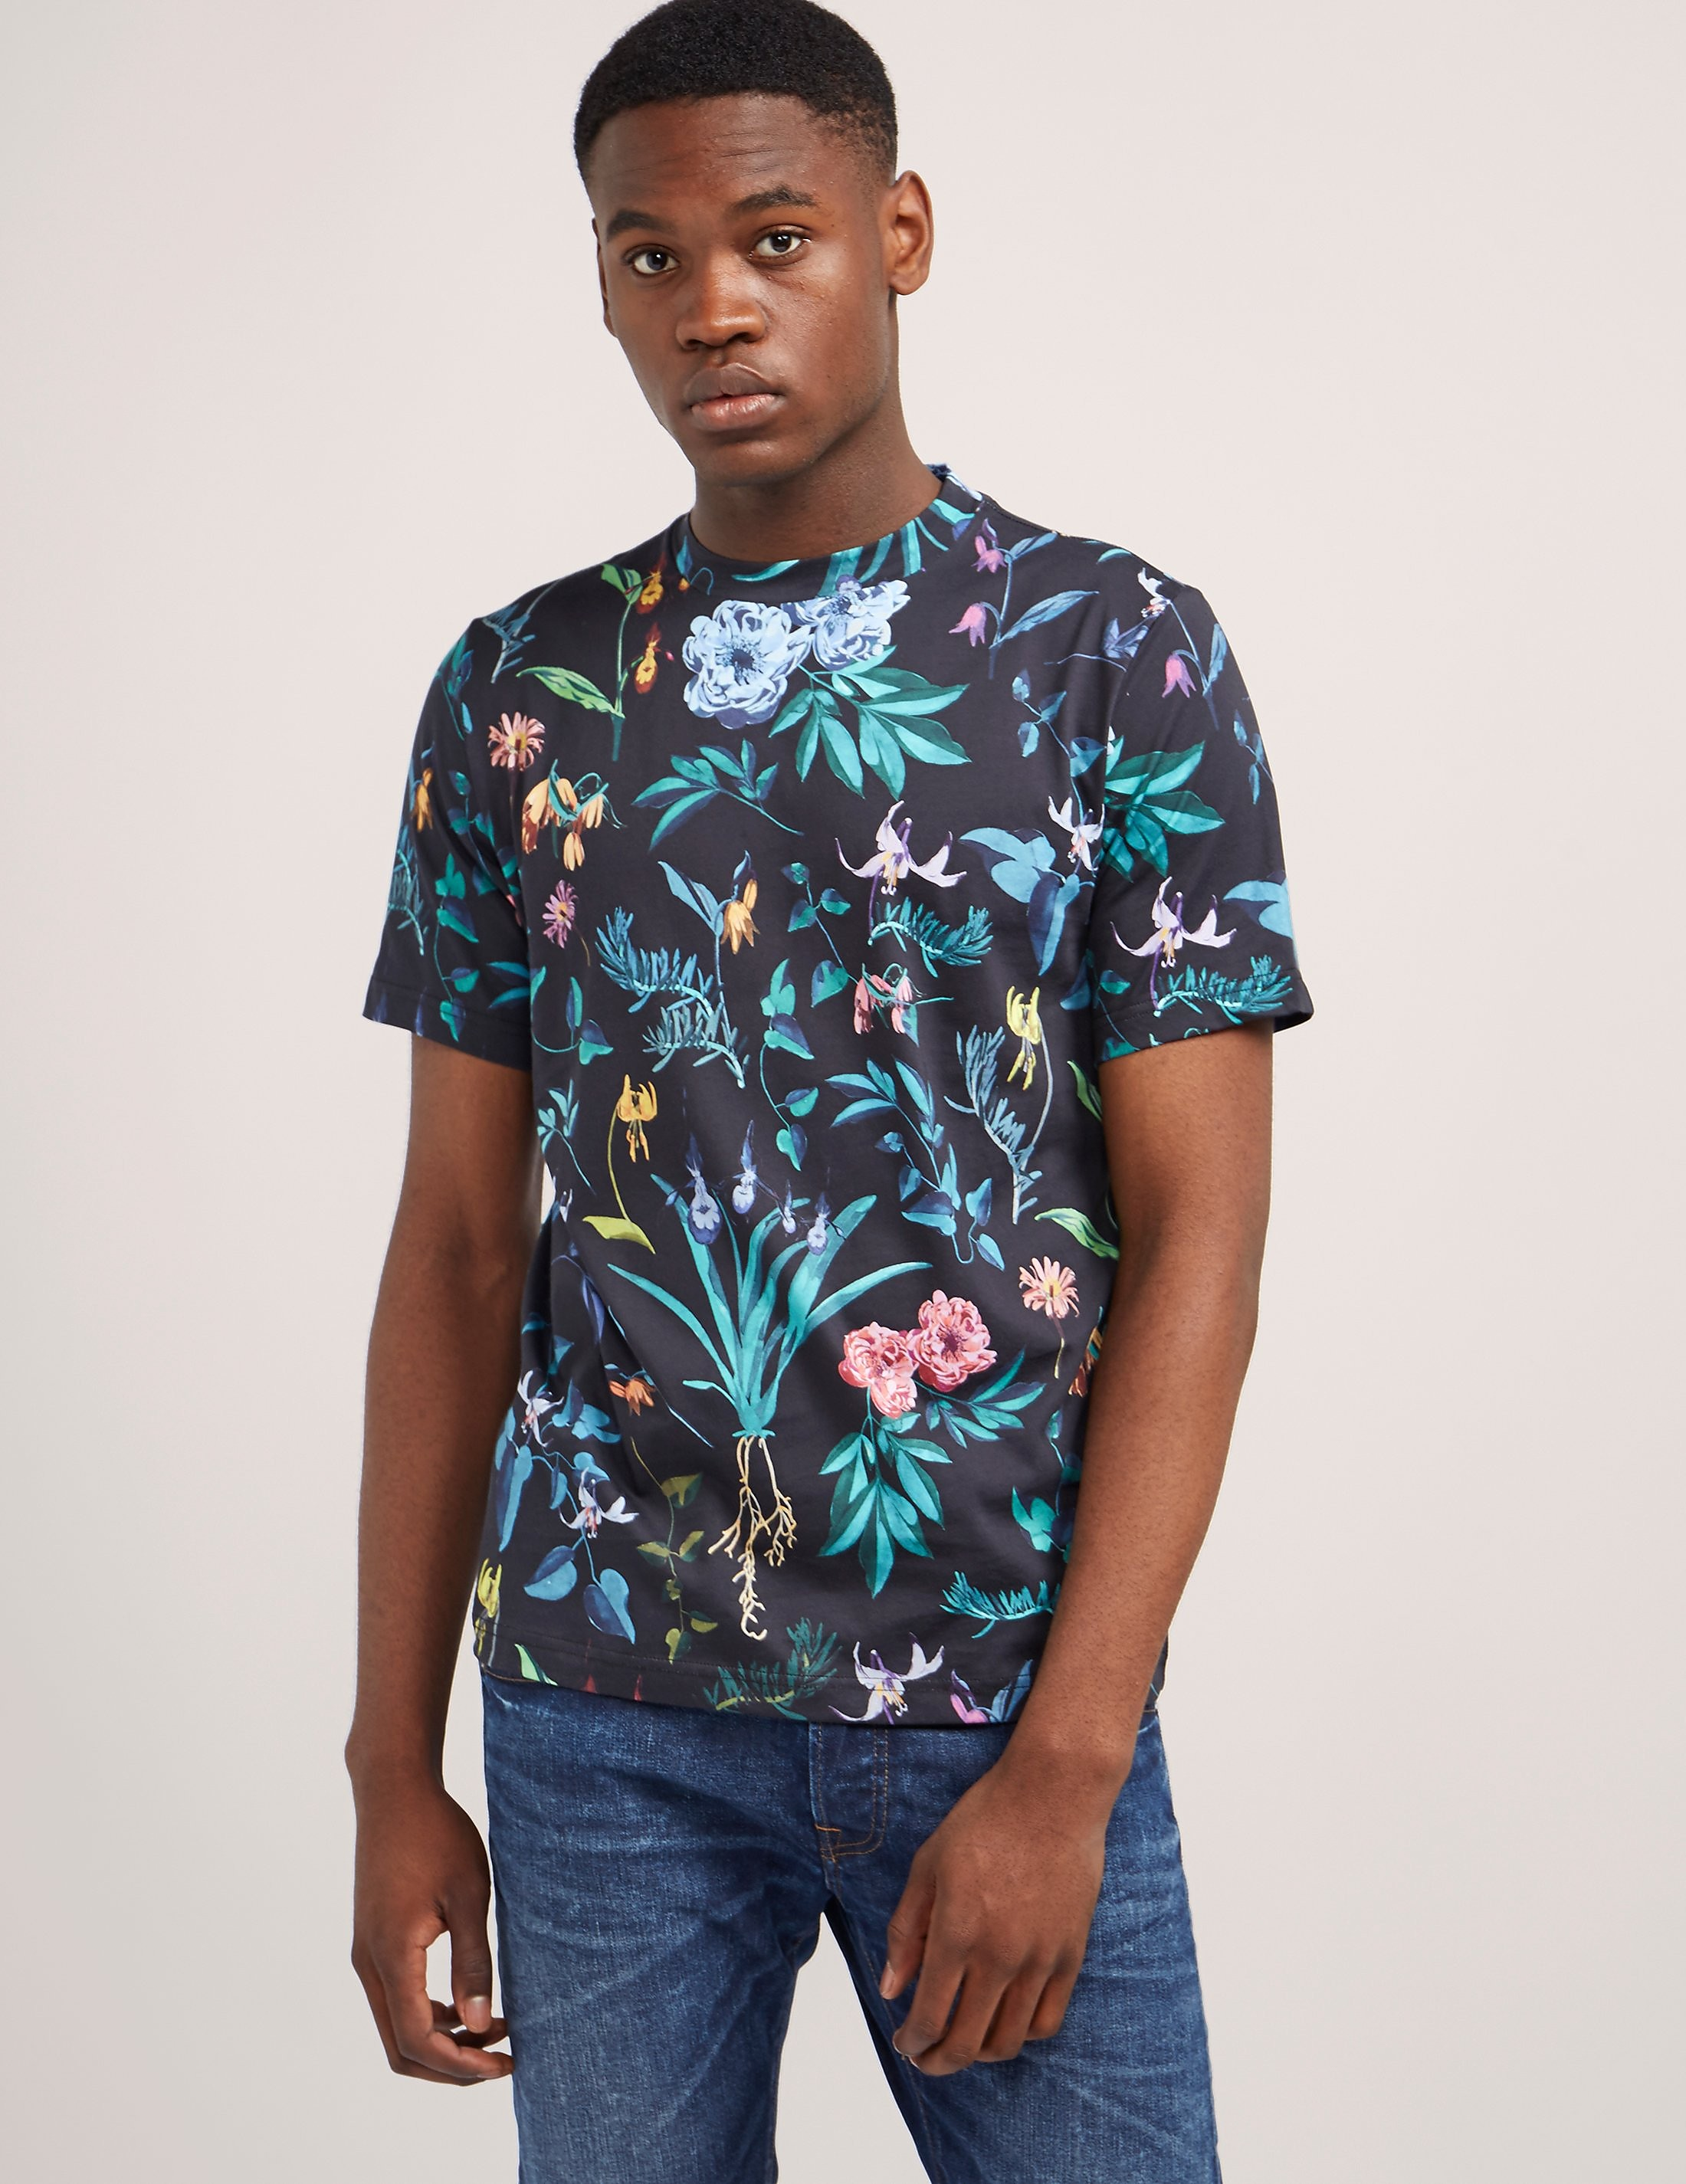 Paul Smith Painted Floral Print Short Sleeve T-Shirt